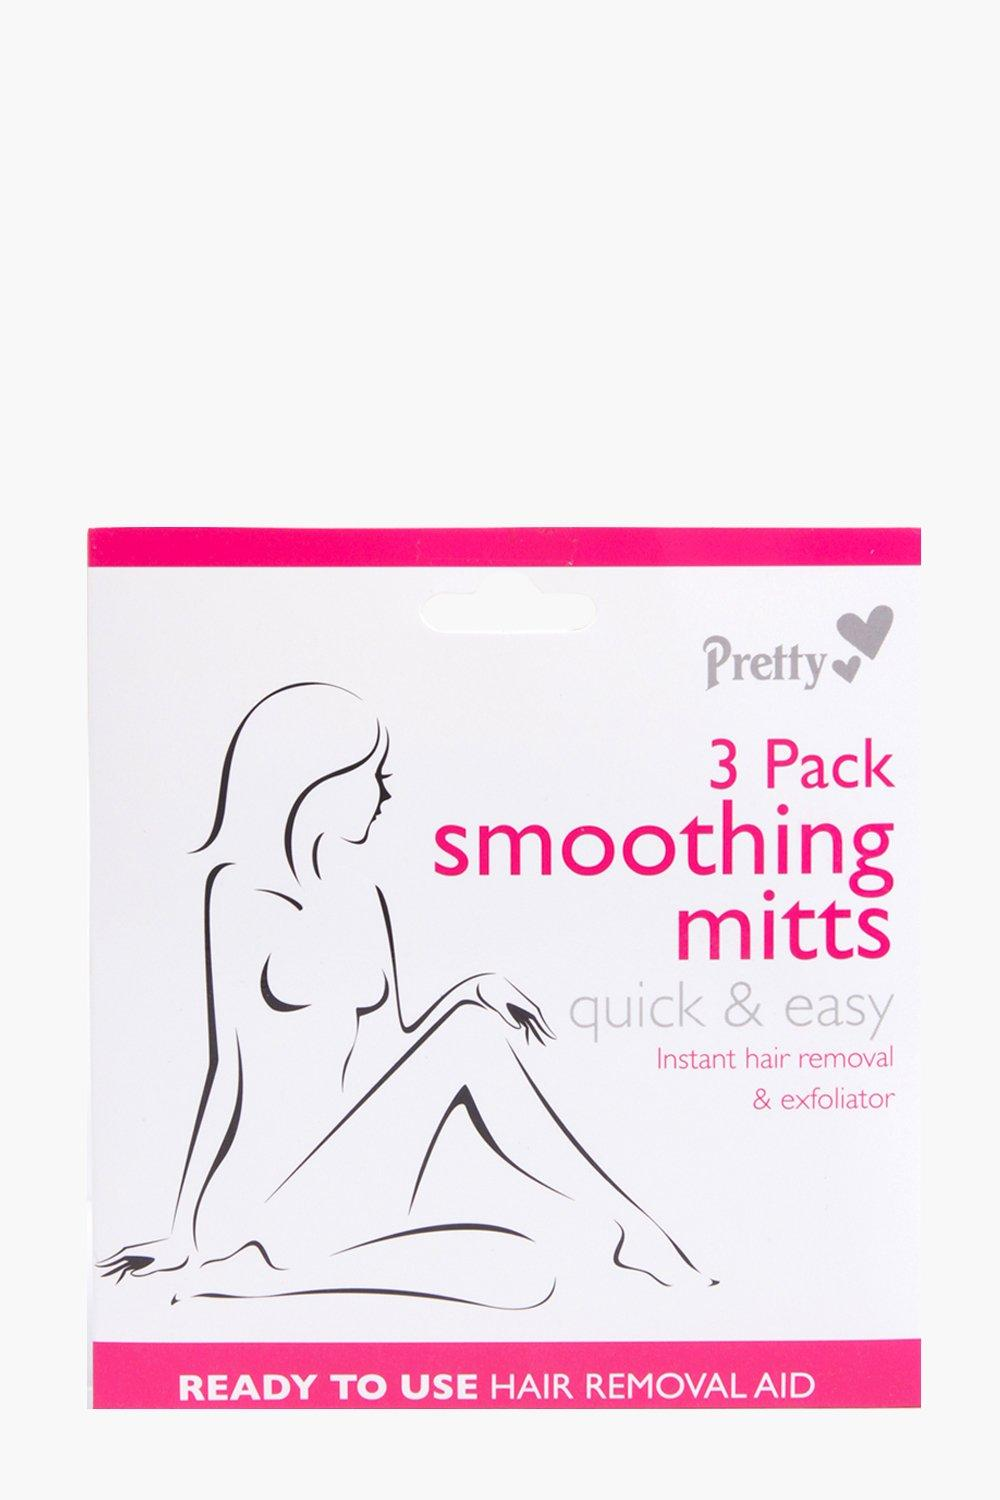 3 Pack Smoothing Mitts